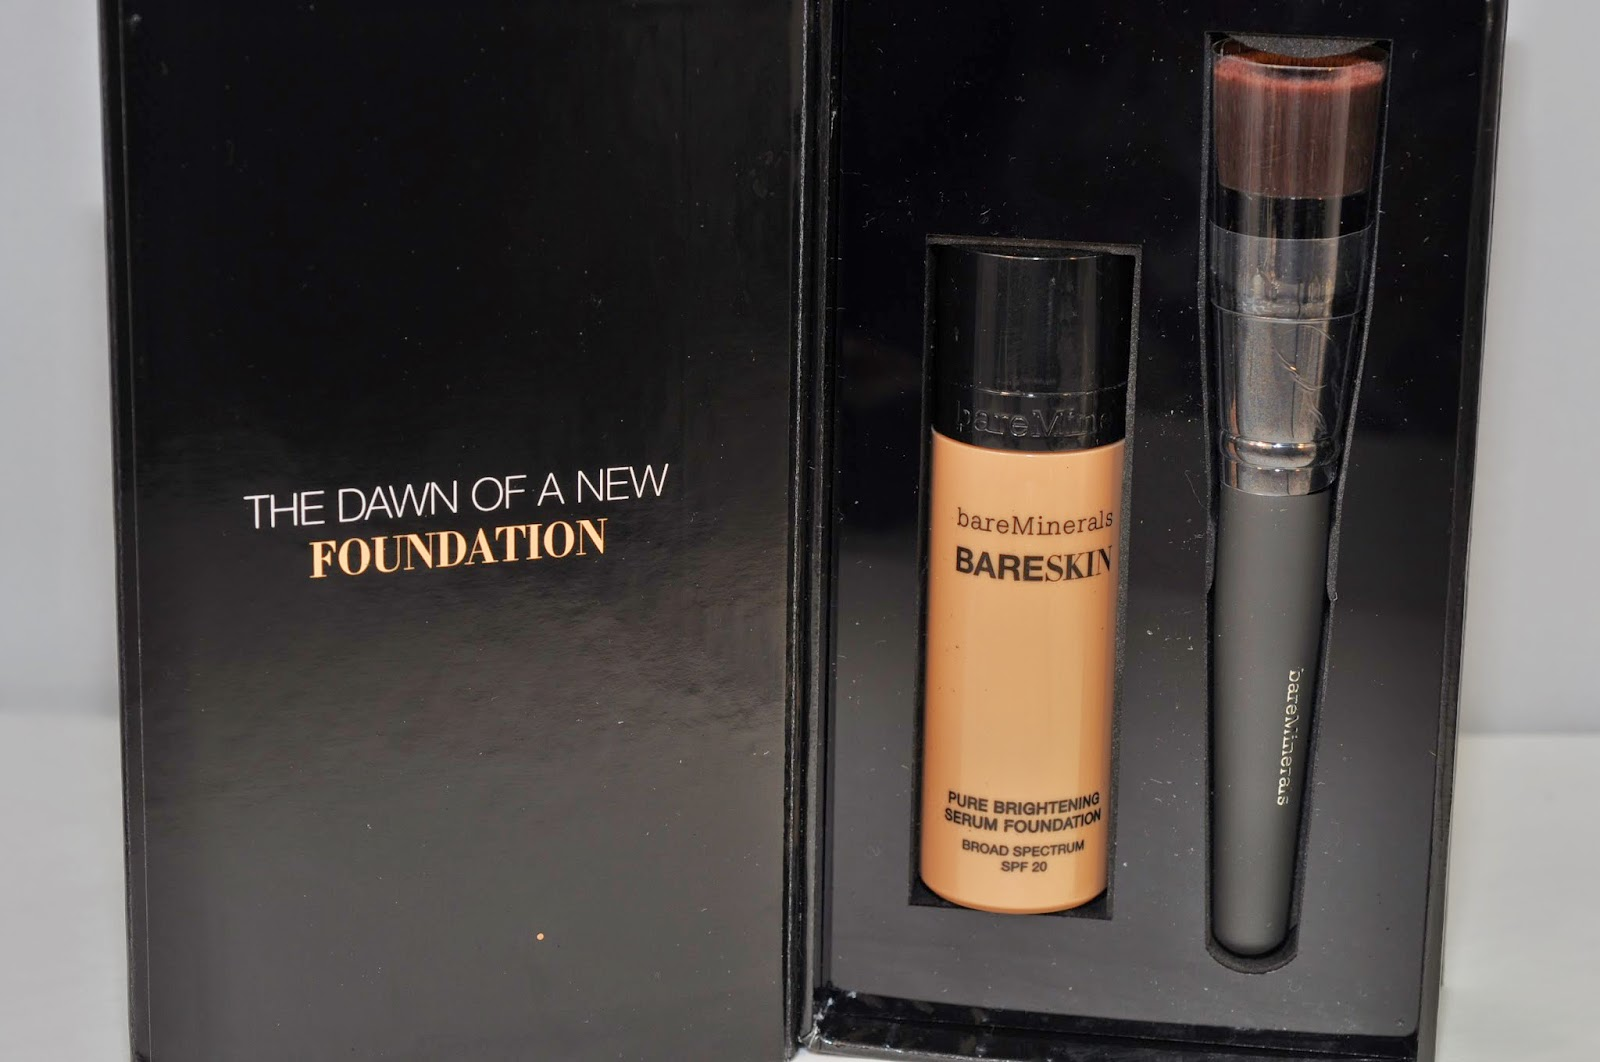 bareMinerals Bare Skin Pure Brightening Serum Foundation